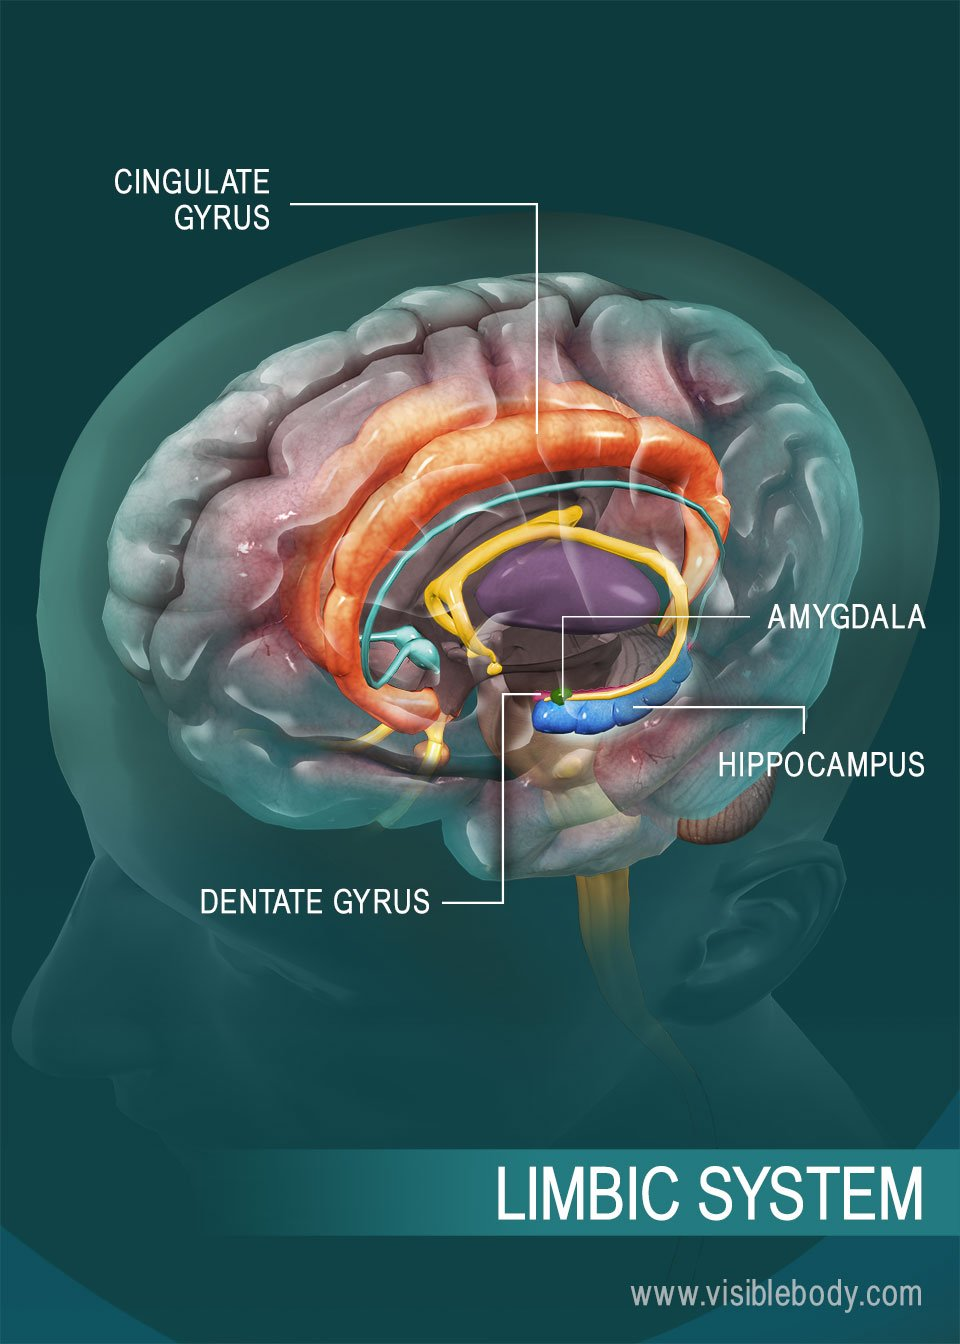 Overview of the limbic system